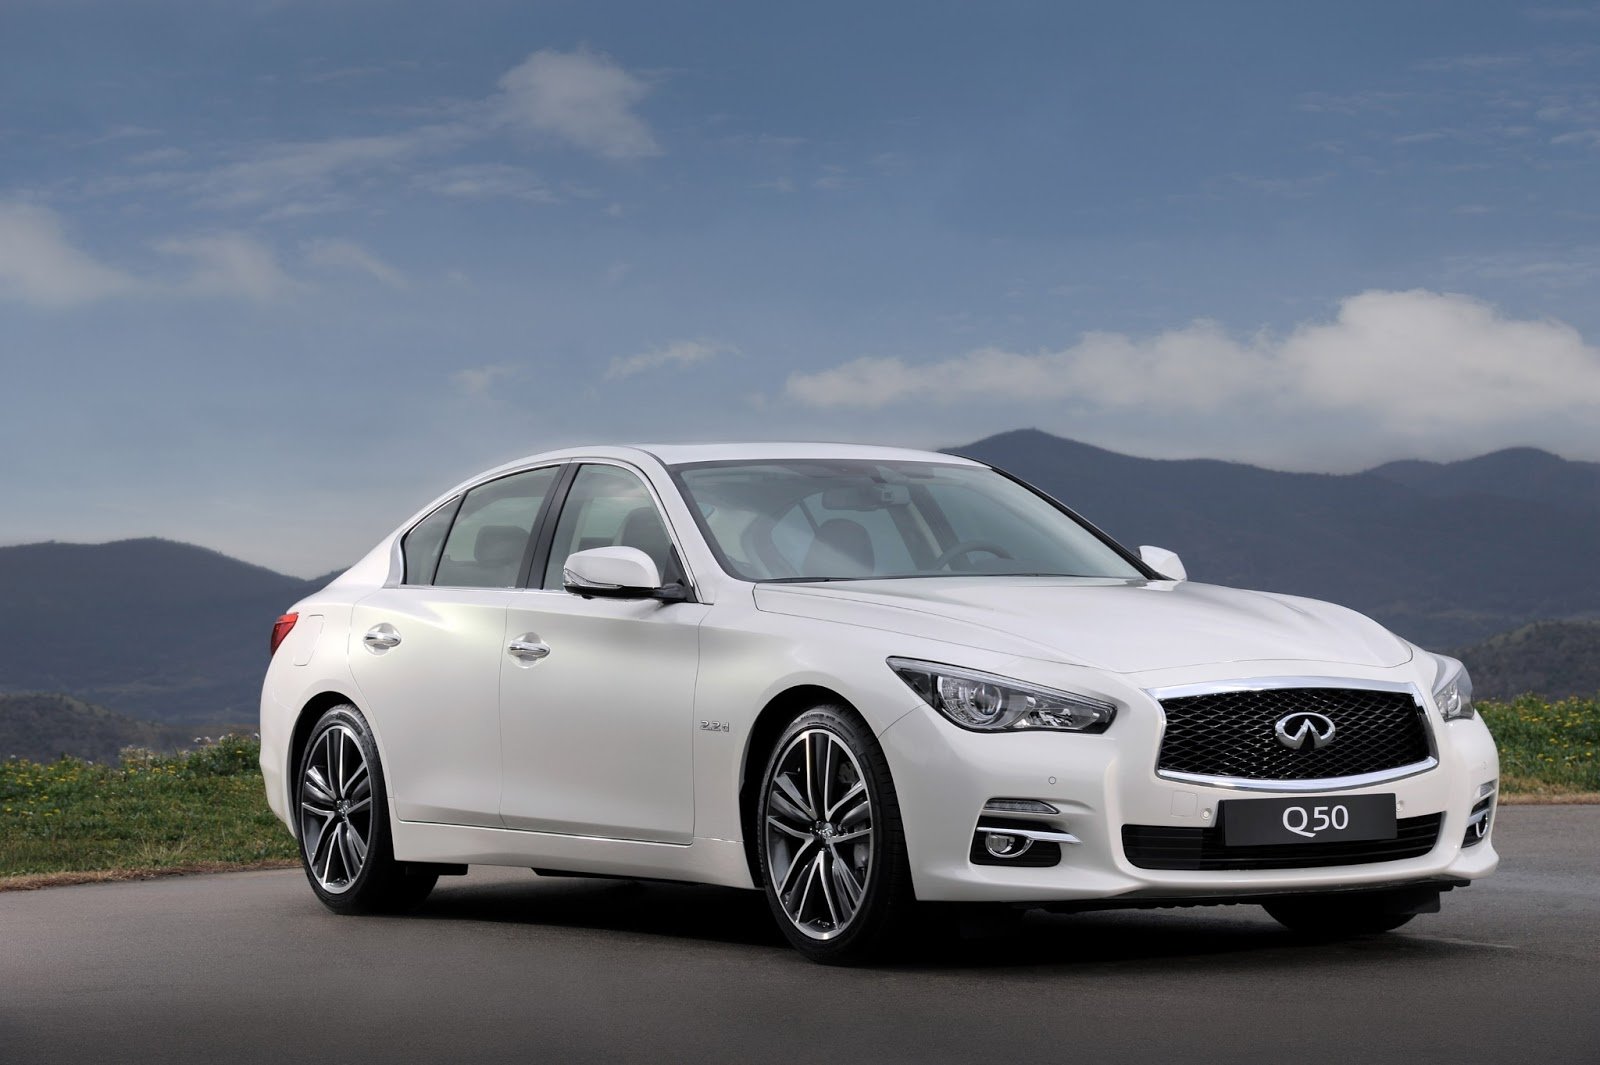 2014 infiniti q50 reviews and prices zero ride. Black Bedroom Furniture Sets. Home Design Ideas